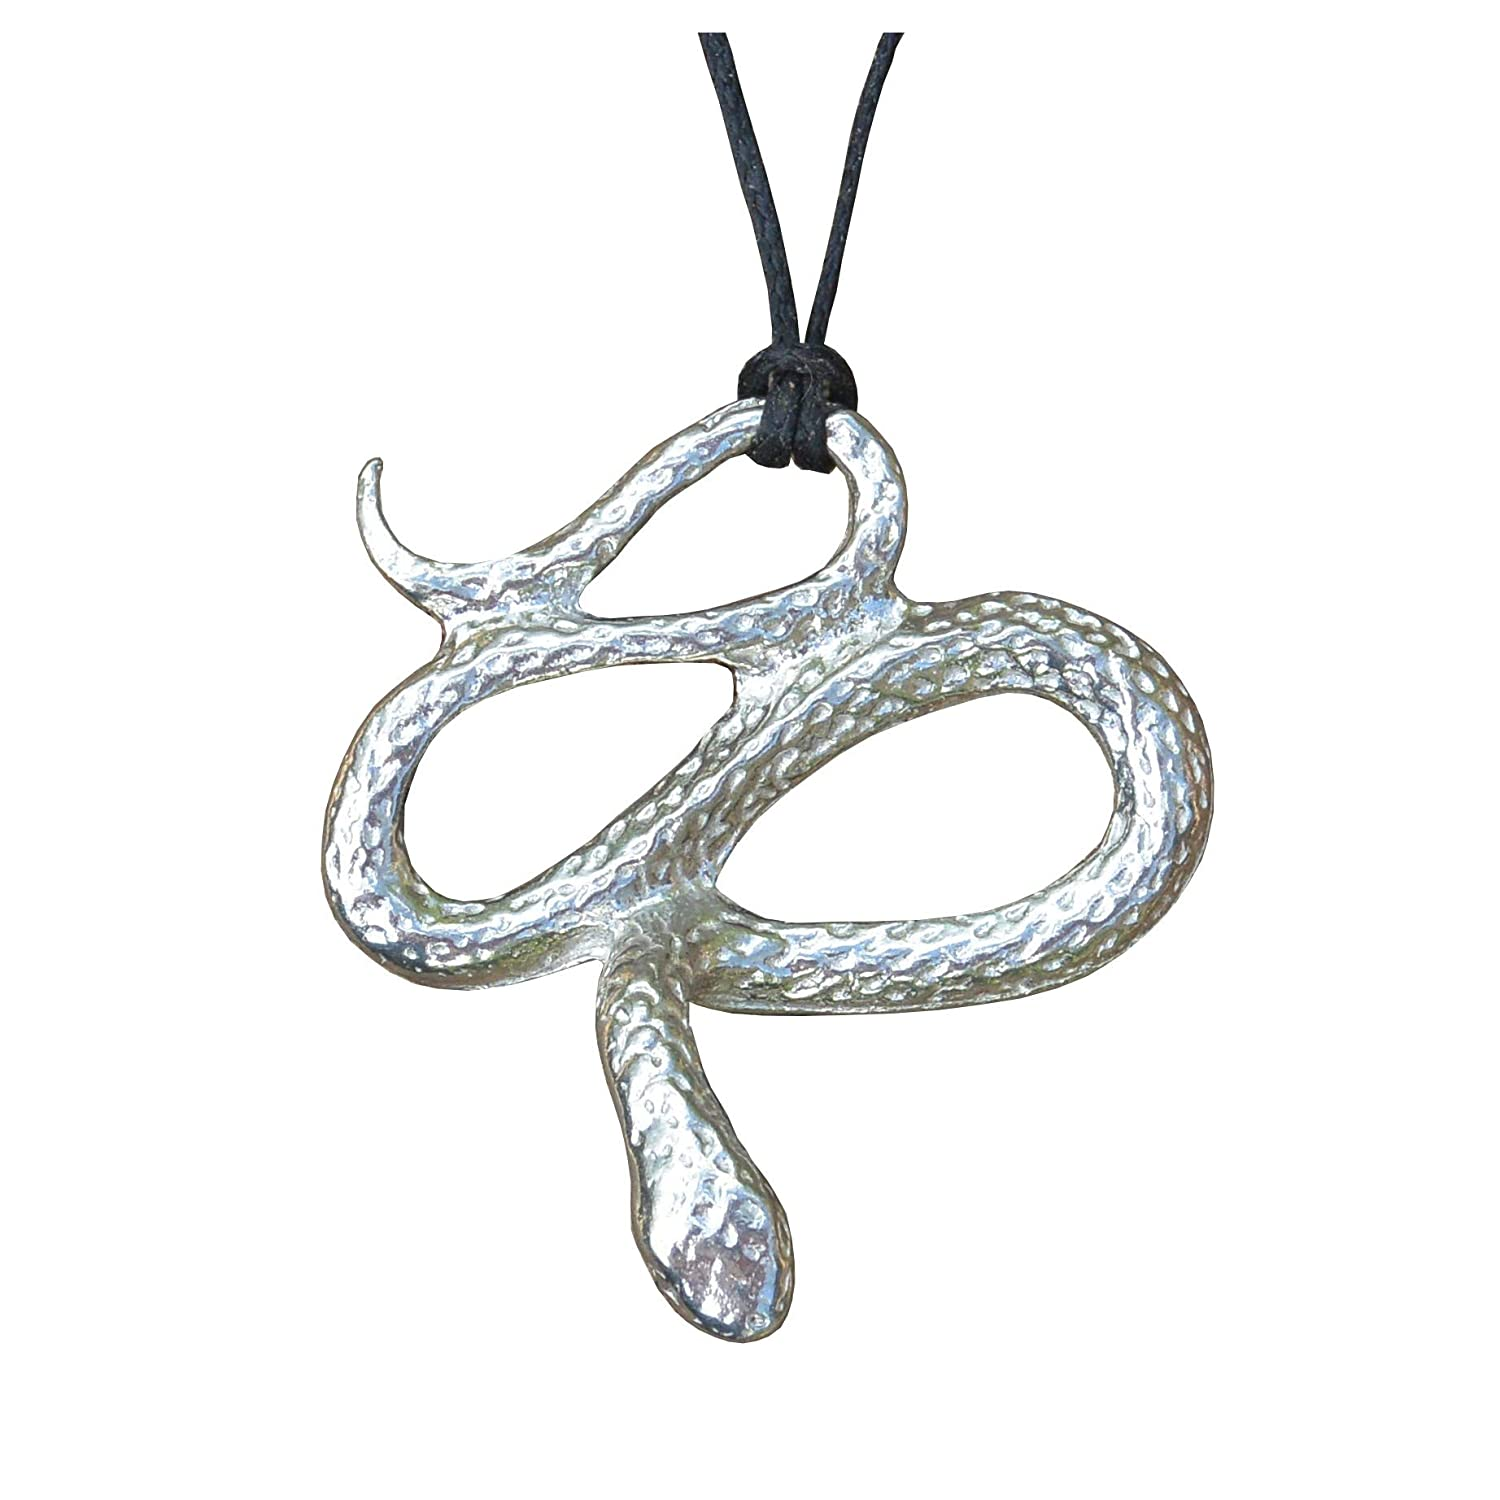 Serpent Pendant Fine Pewter Strung on Adjustable Waxed Cord Snake Pendant by William Sturt Handmade